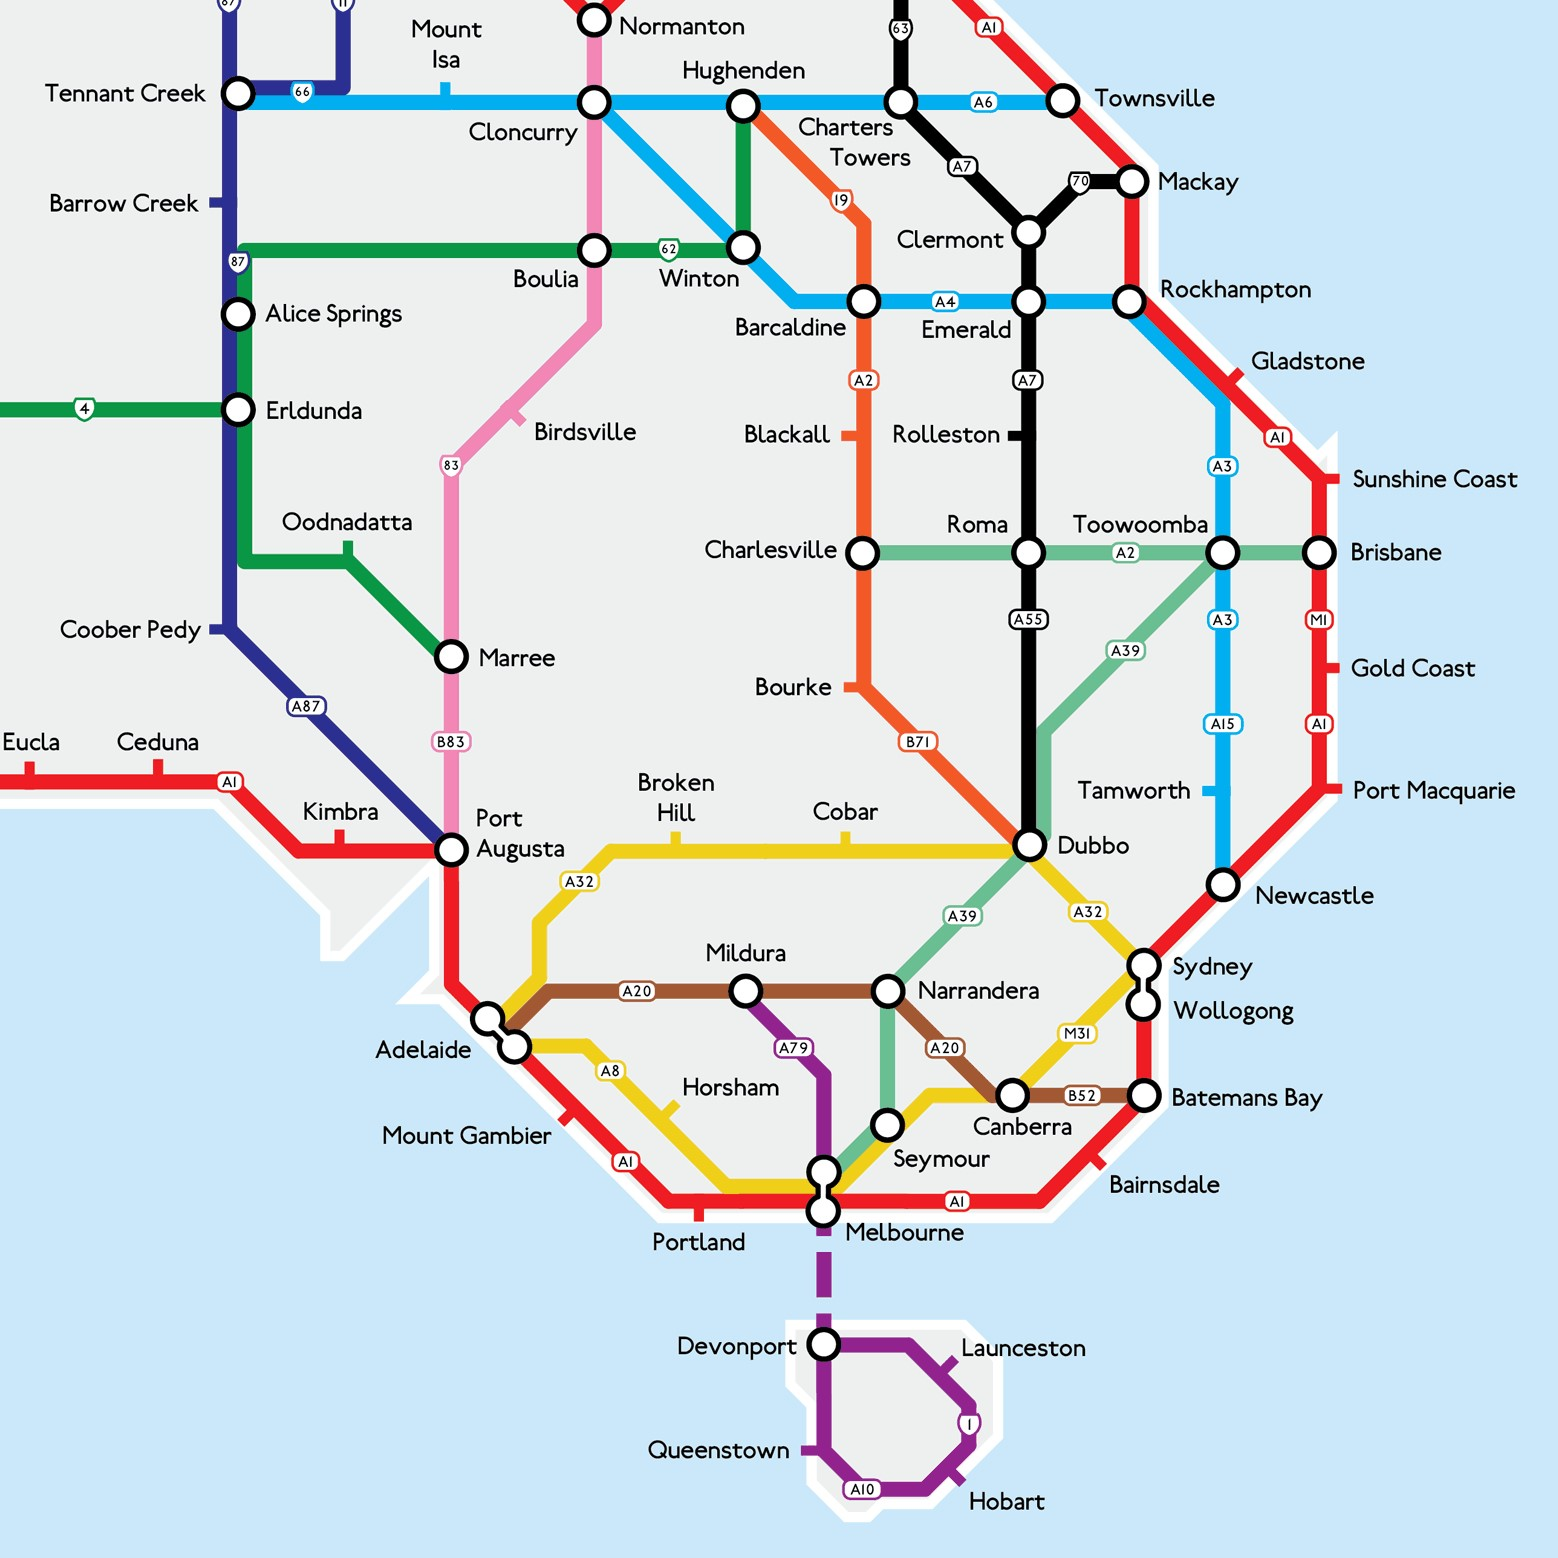 Highways of Australia Metro Map